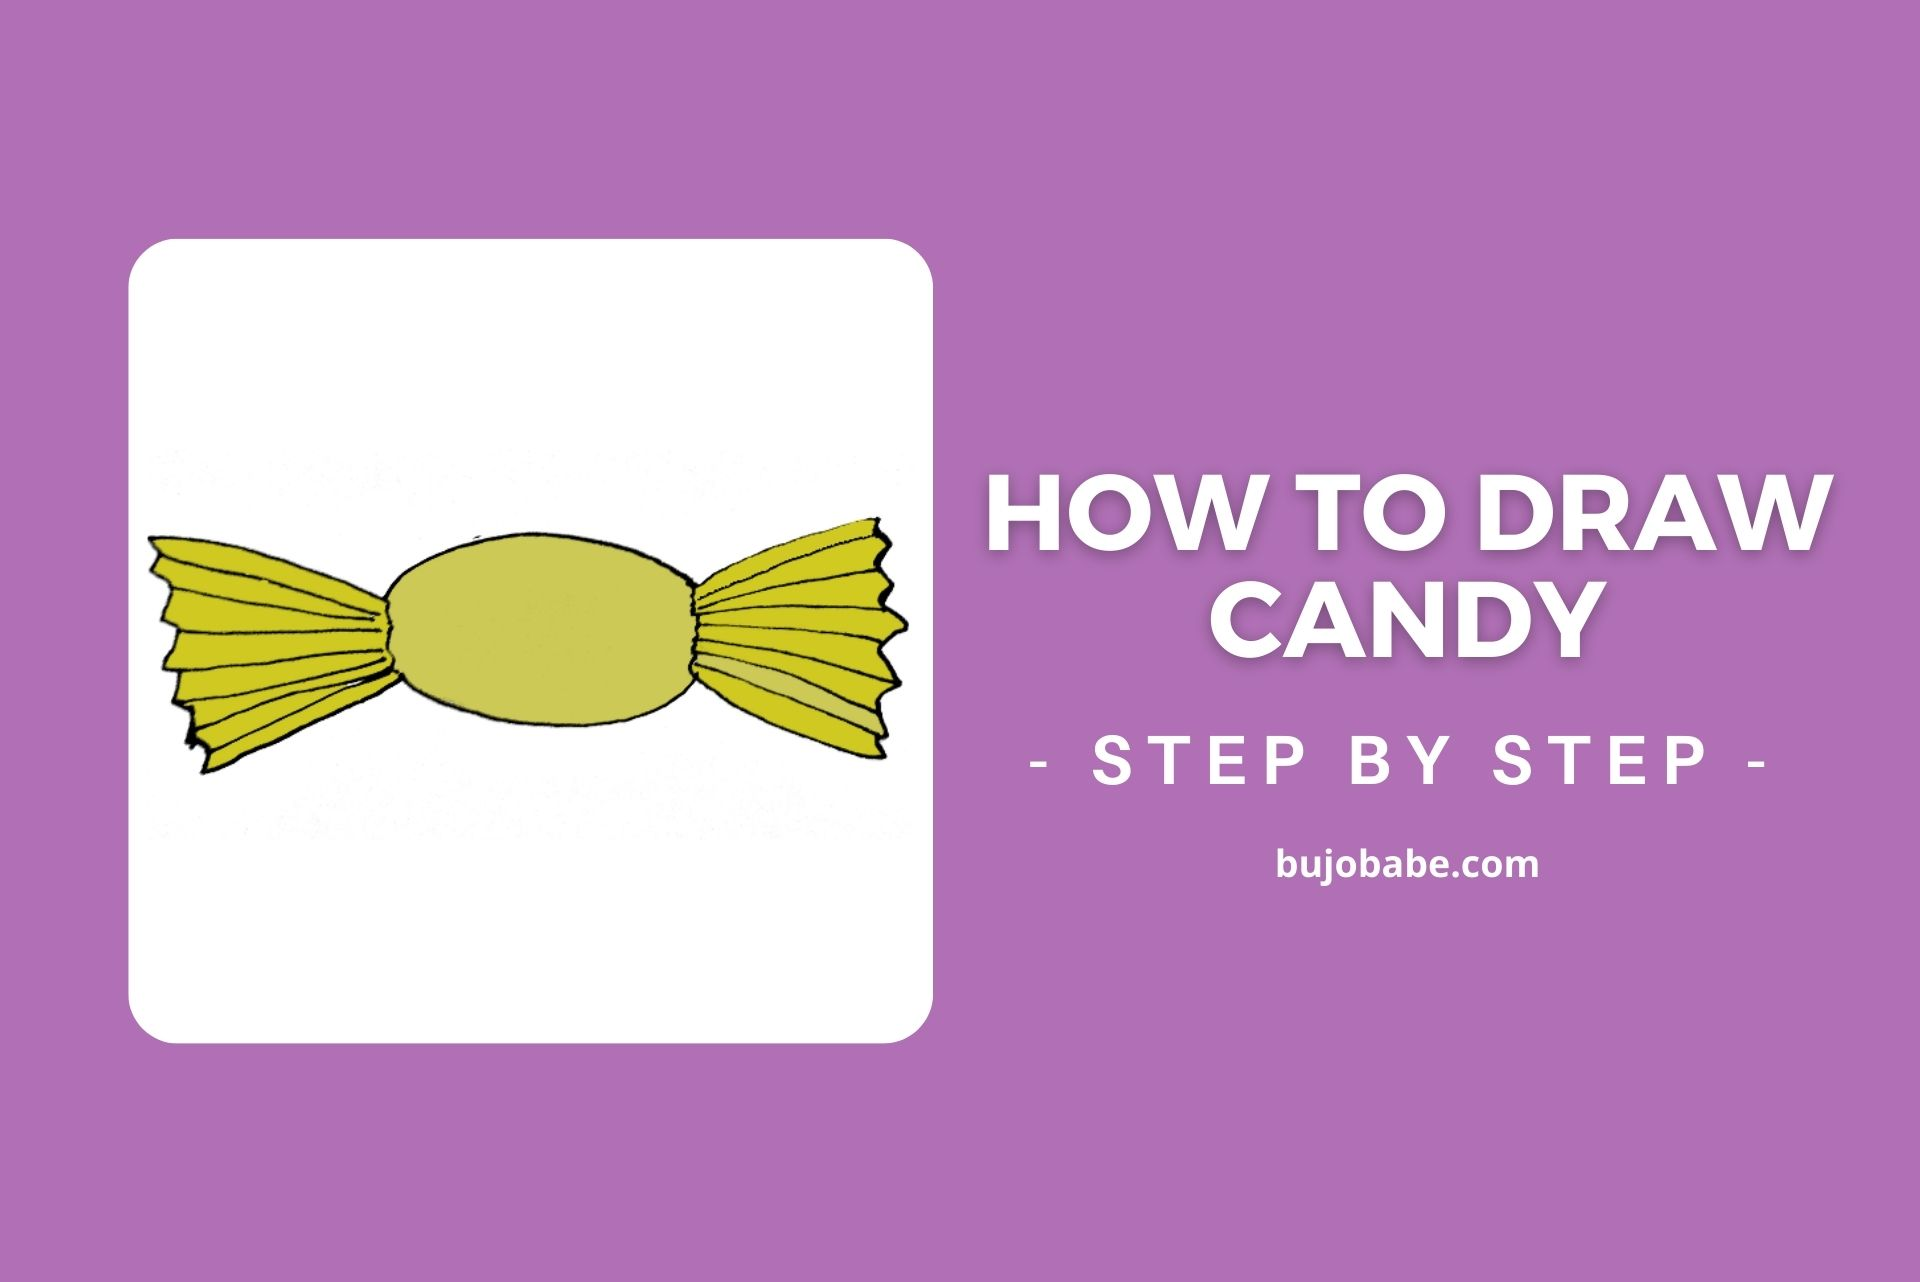 how to draw candy